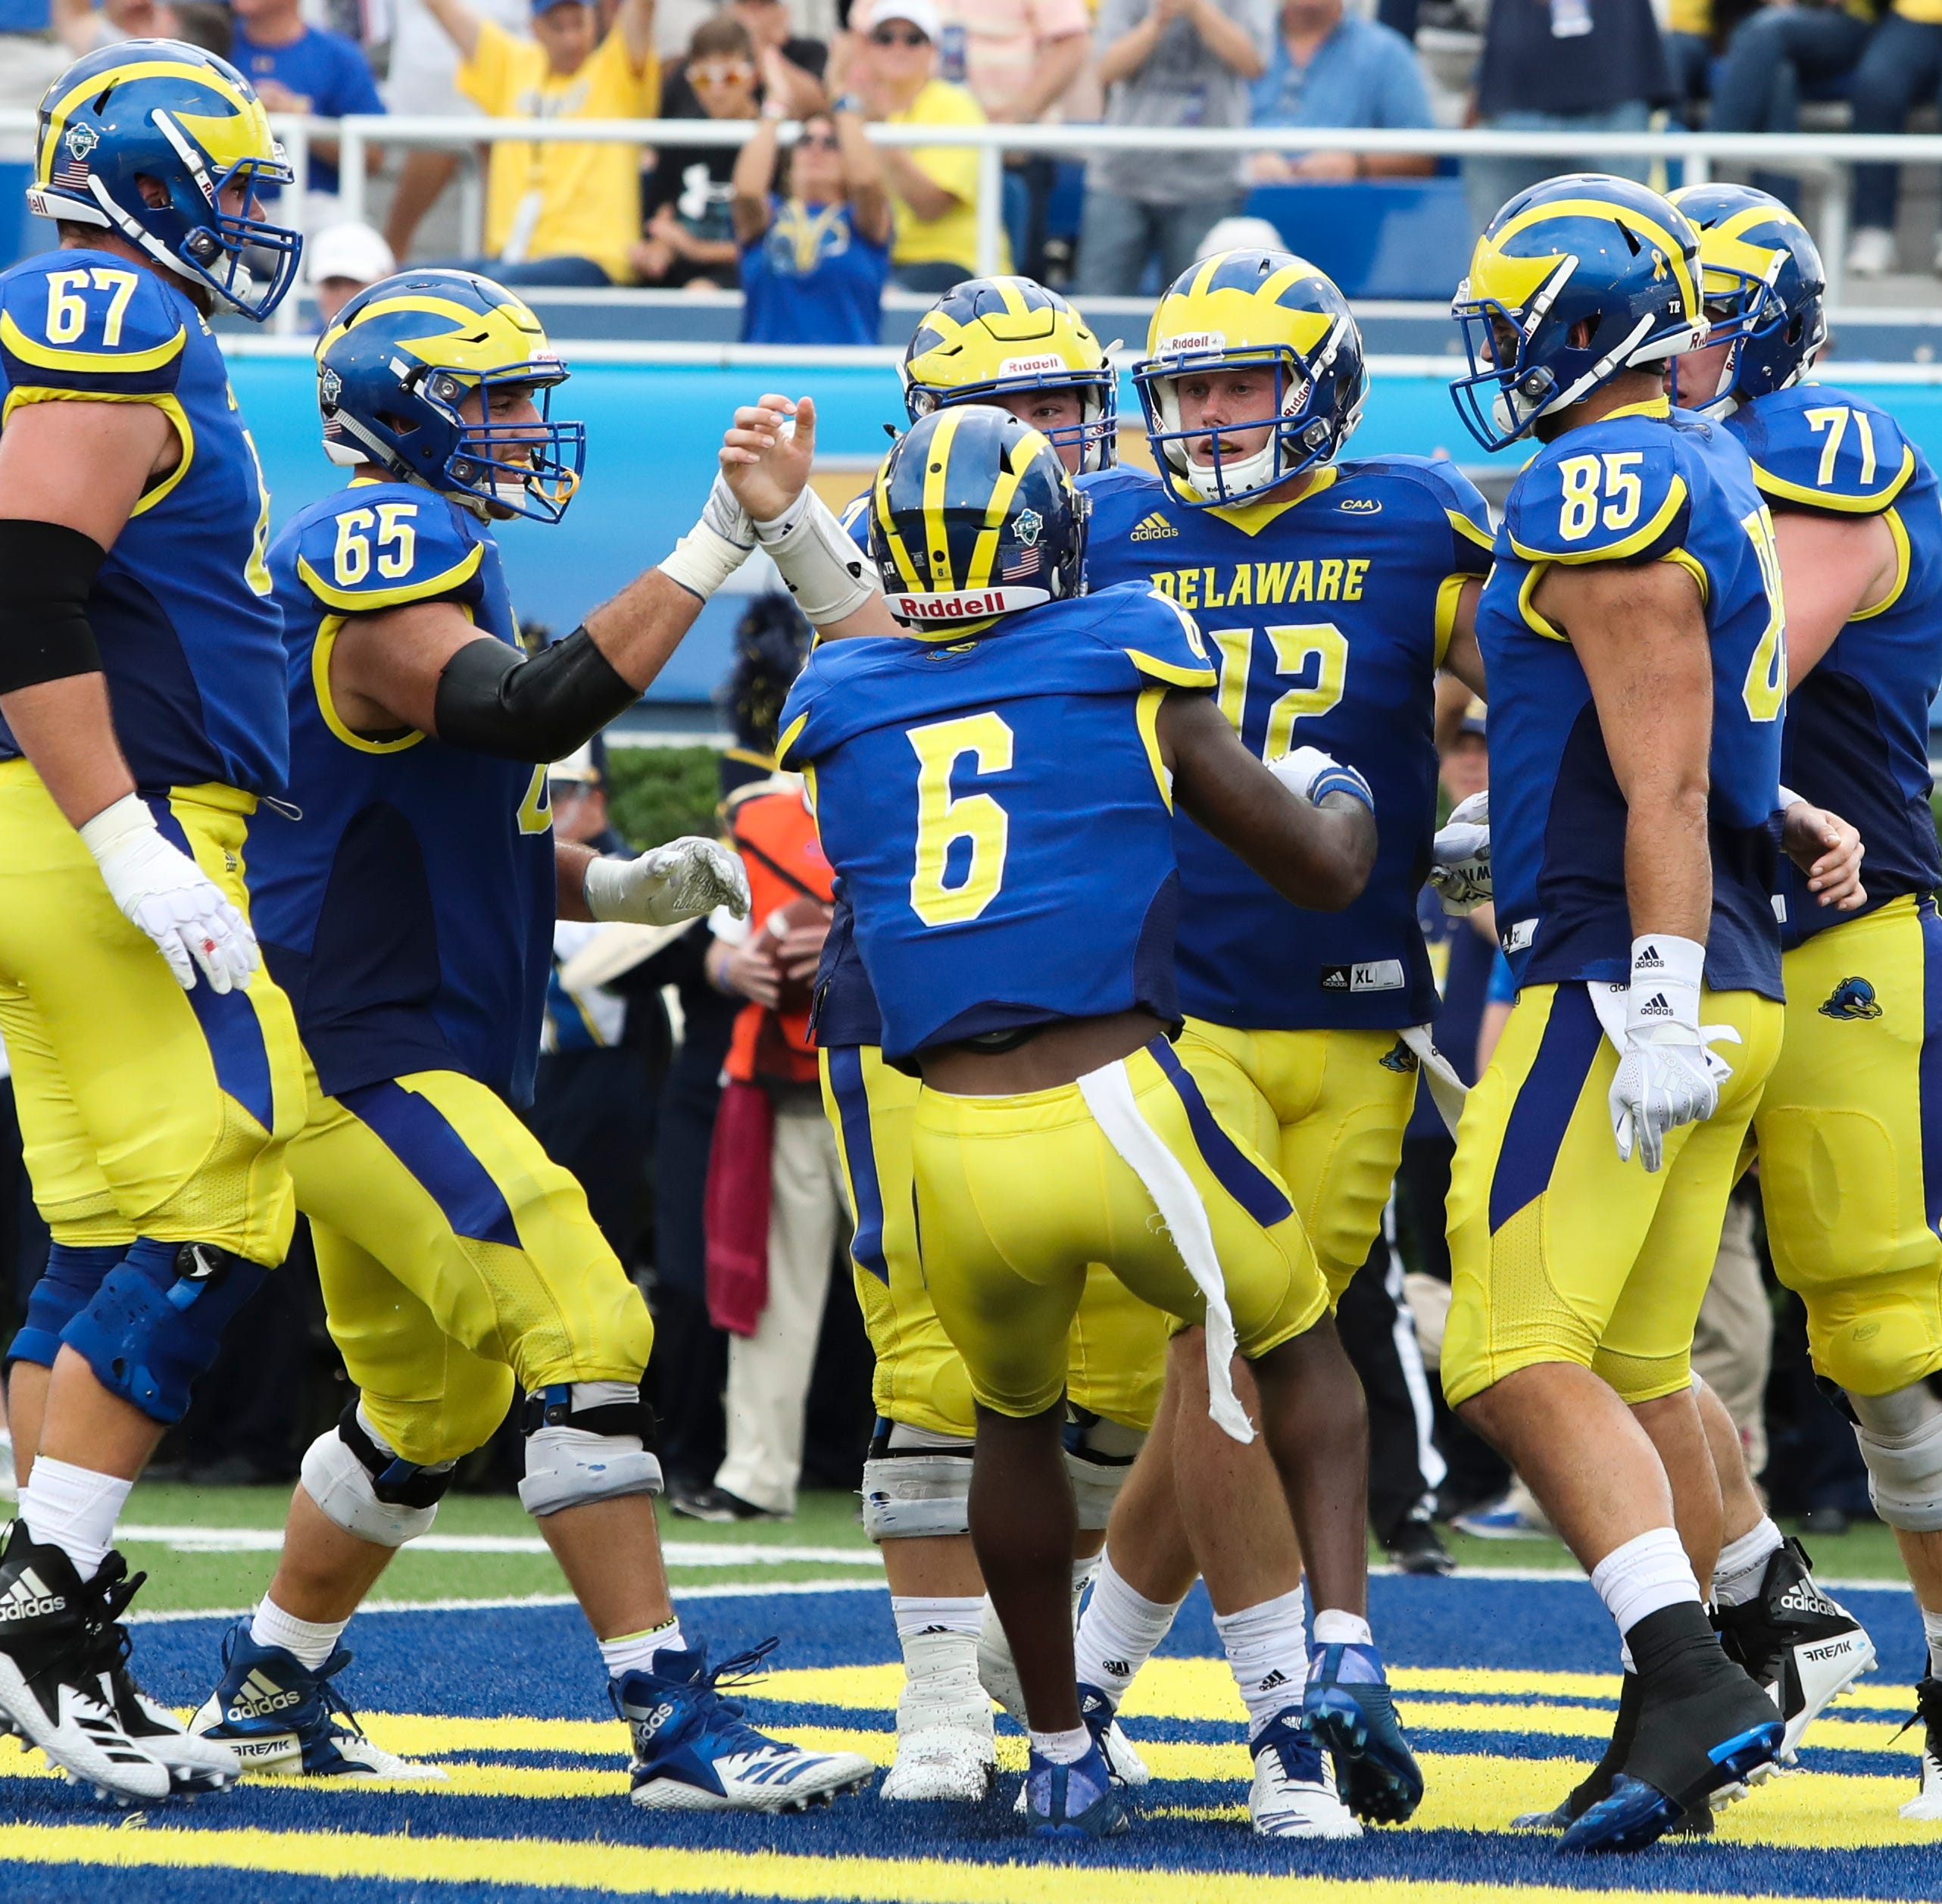 Delaware football's return to glory could start Saturday at North Dakota State